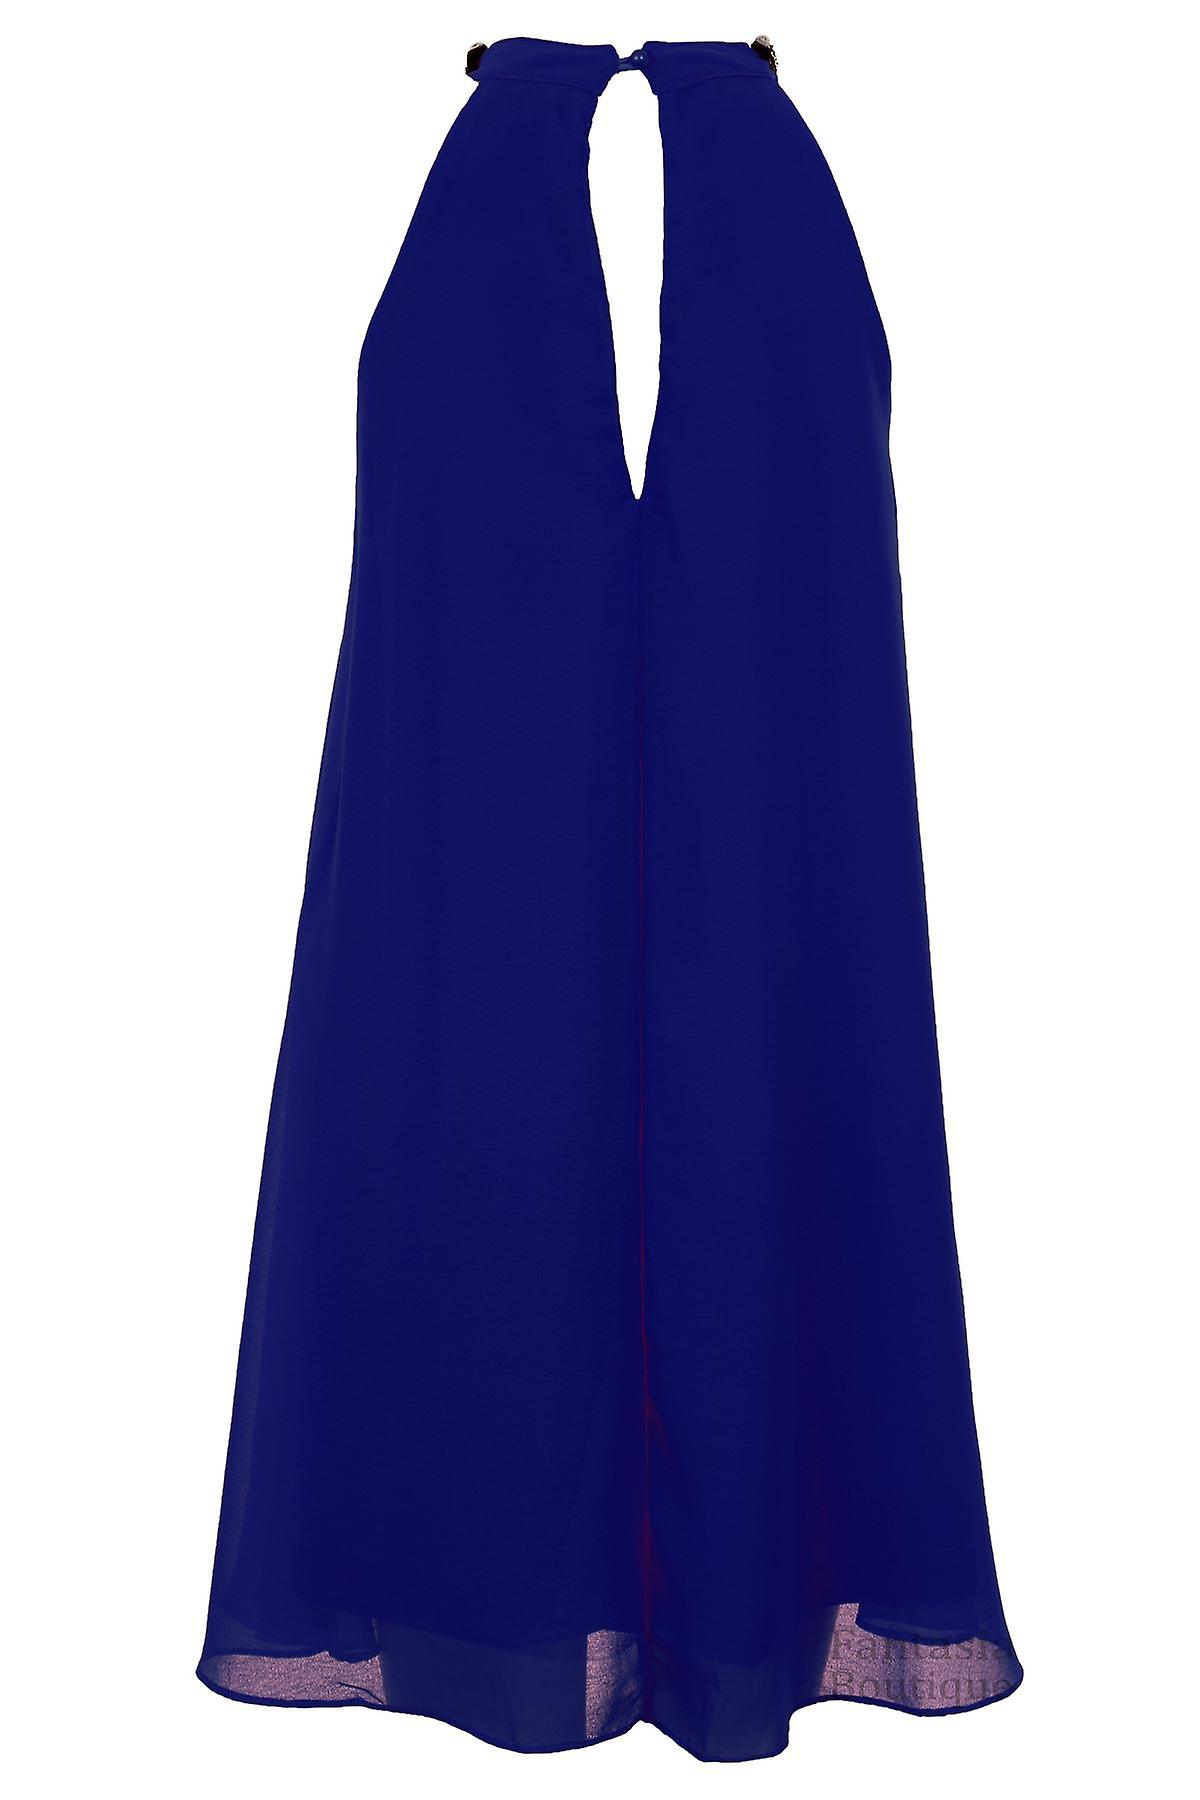 Ladies Diamante Necklace Neck Chiffon Lined Pleated Top Women's Party Dress